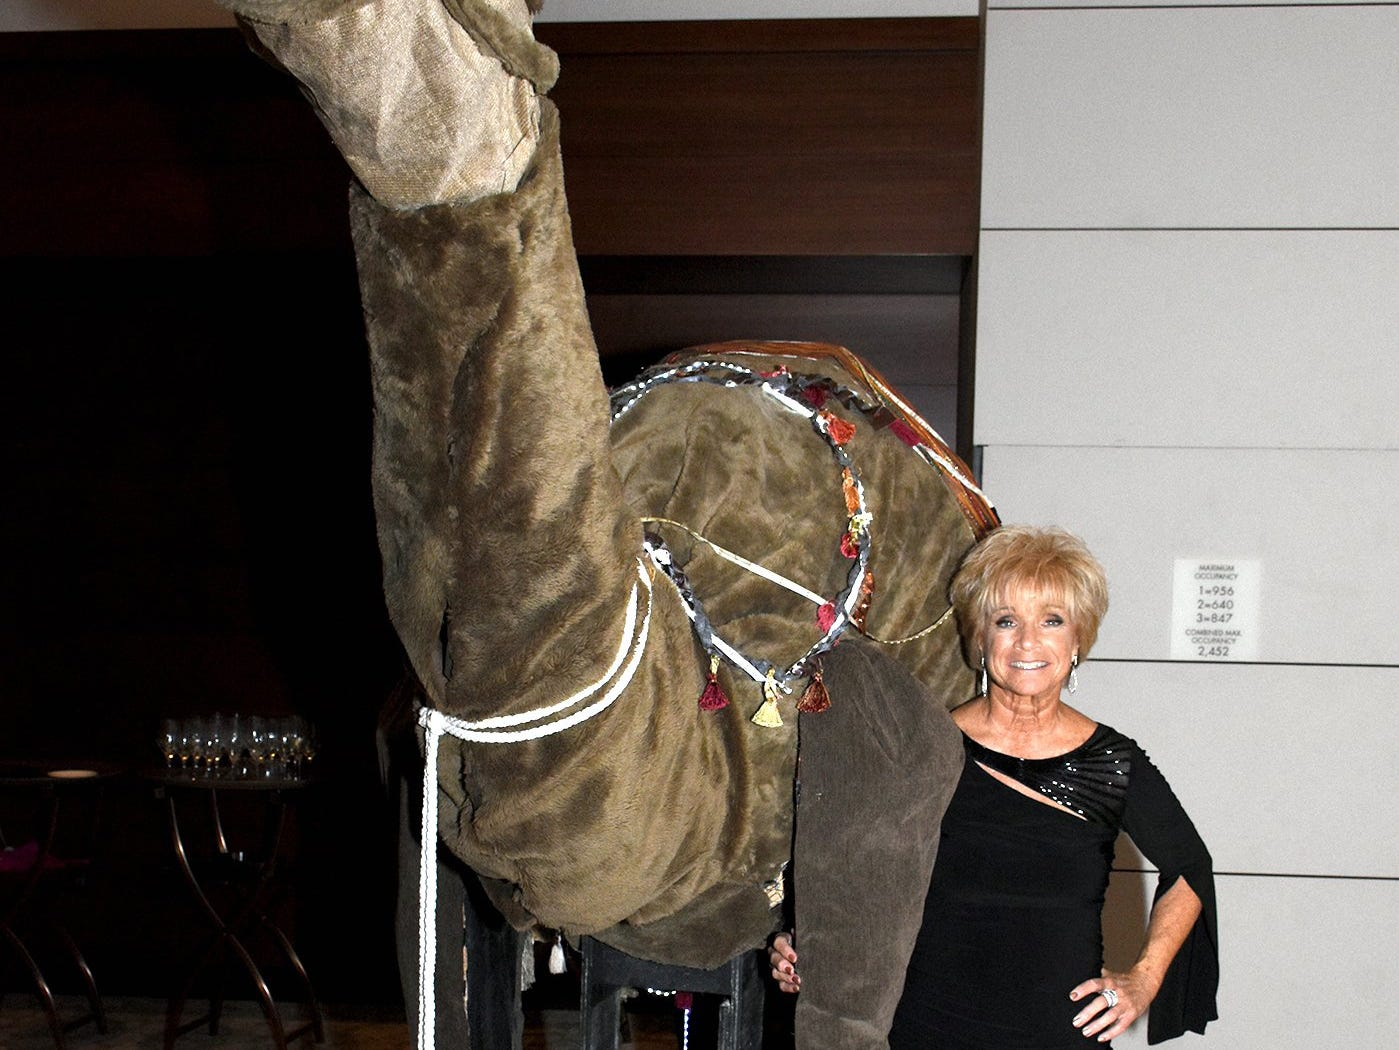 Debra Shanahan poses with a large stuffed camel. The Marco Island unit of the American Cancer Society held the Imagination Ball Friday evening at the JW Marriott hotel, raising funds to continue the fight against cancer.